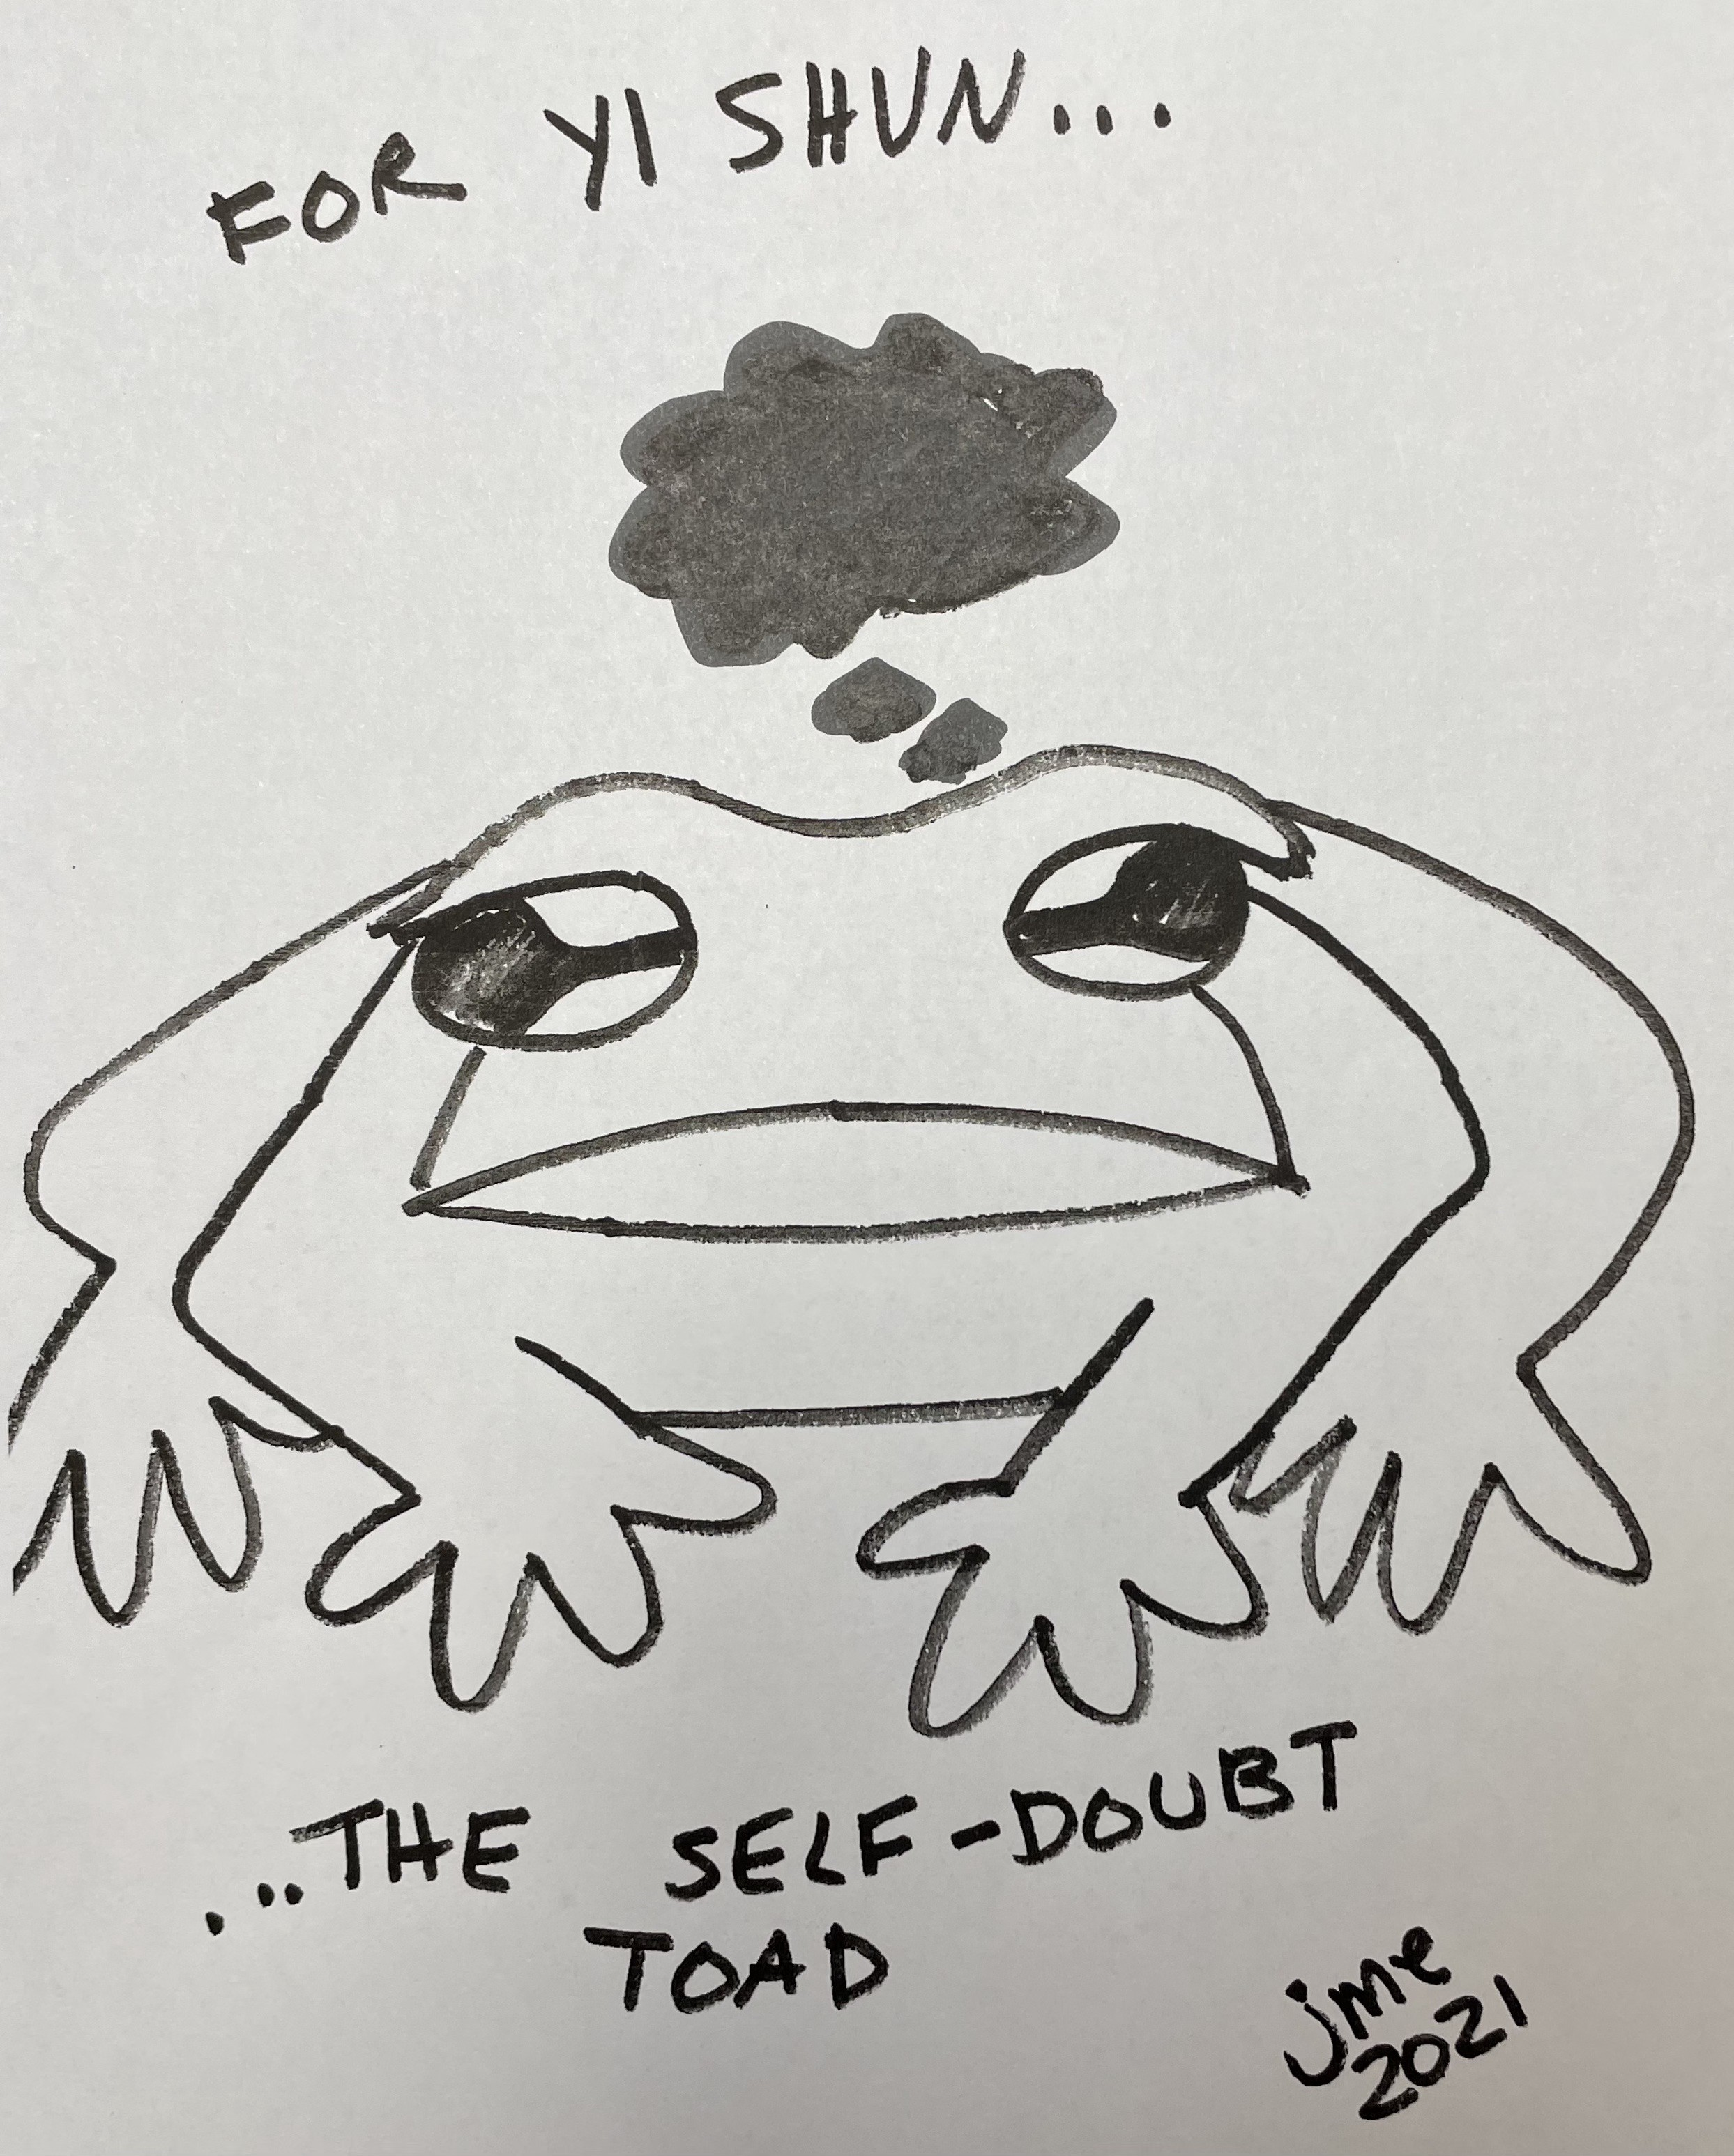 Marker drawing of an unhappy-looking toad with a black cloud over its head. Text reads: For Yi Shun…Self-doubt toad